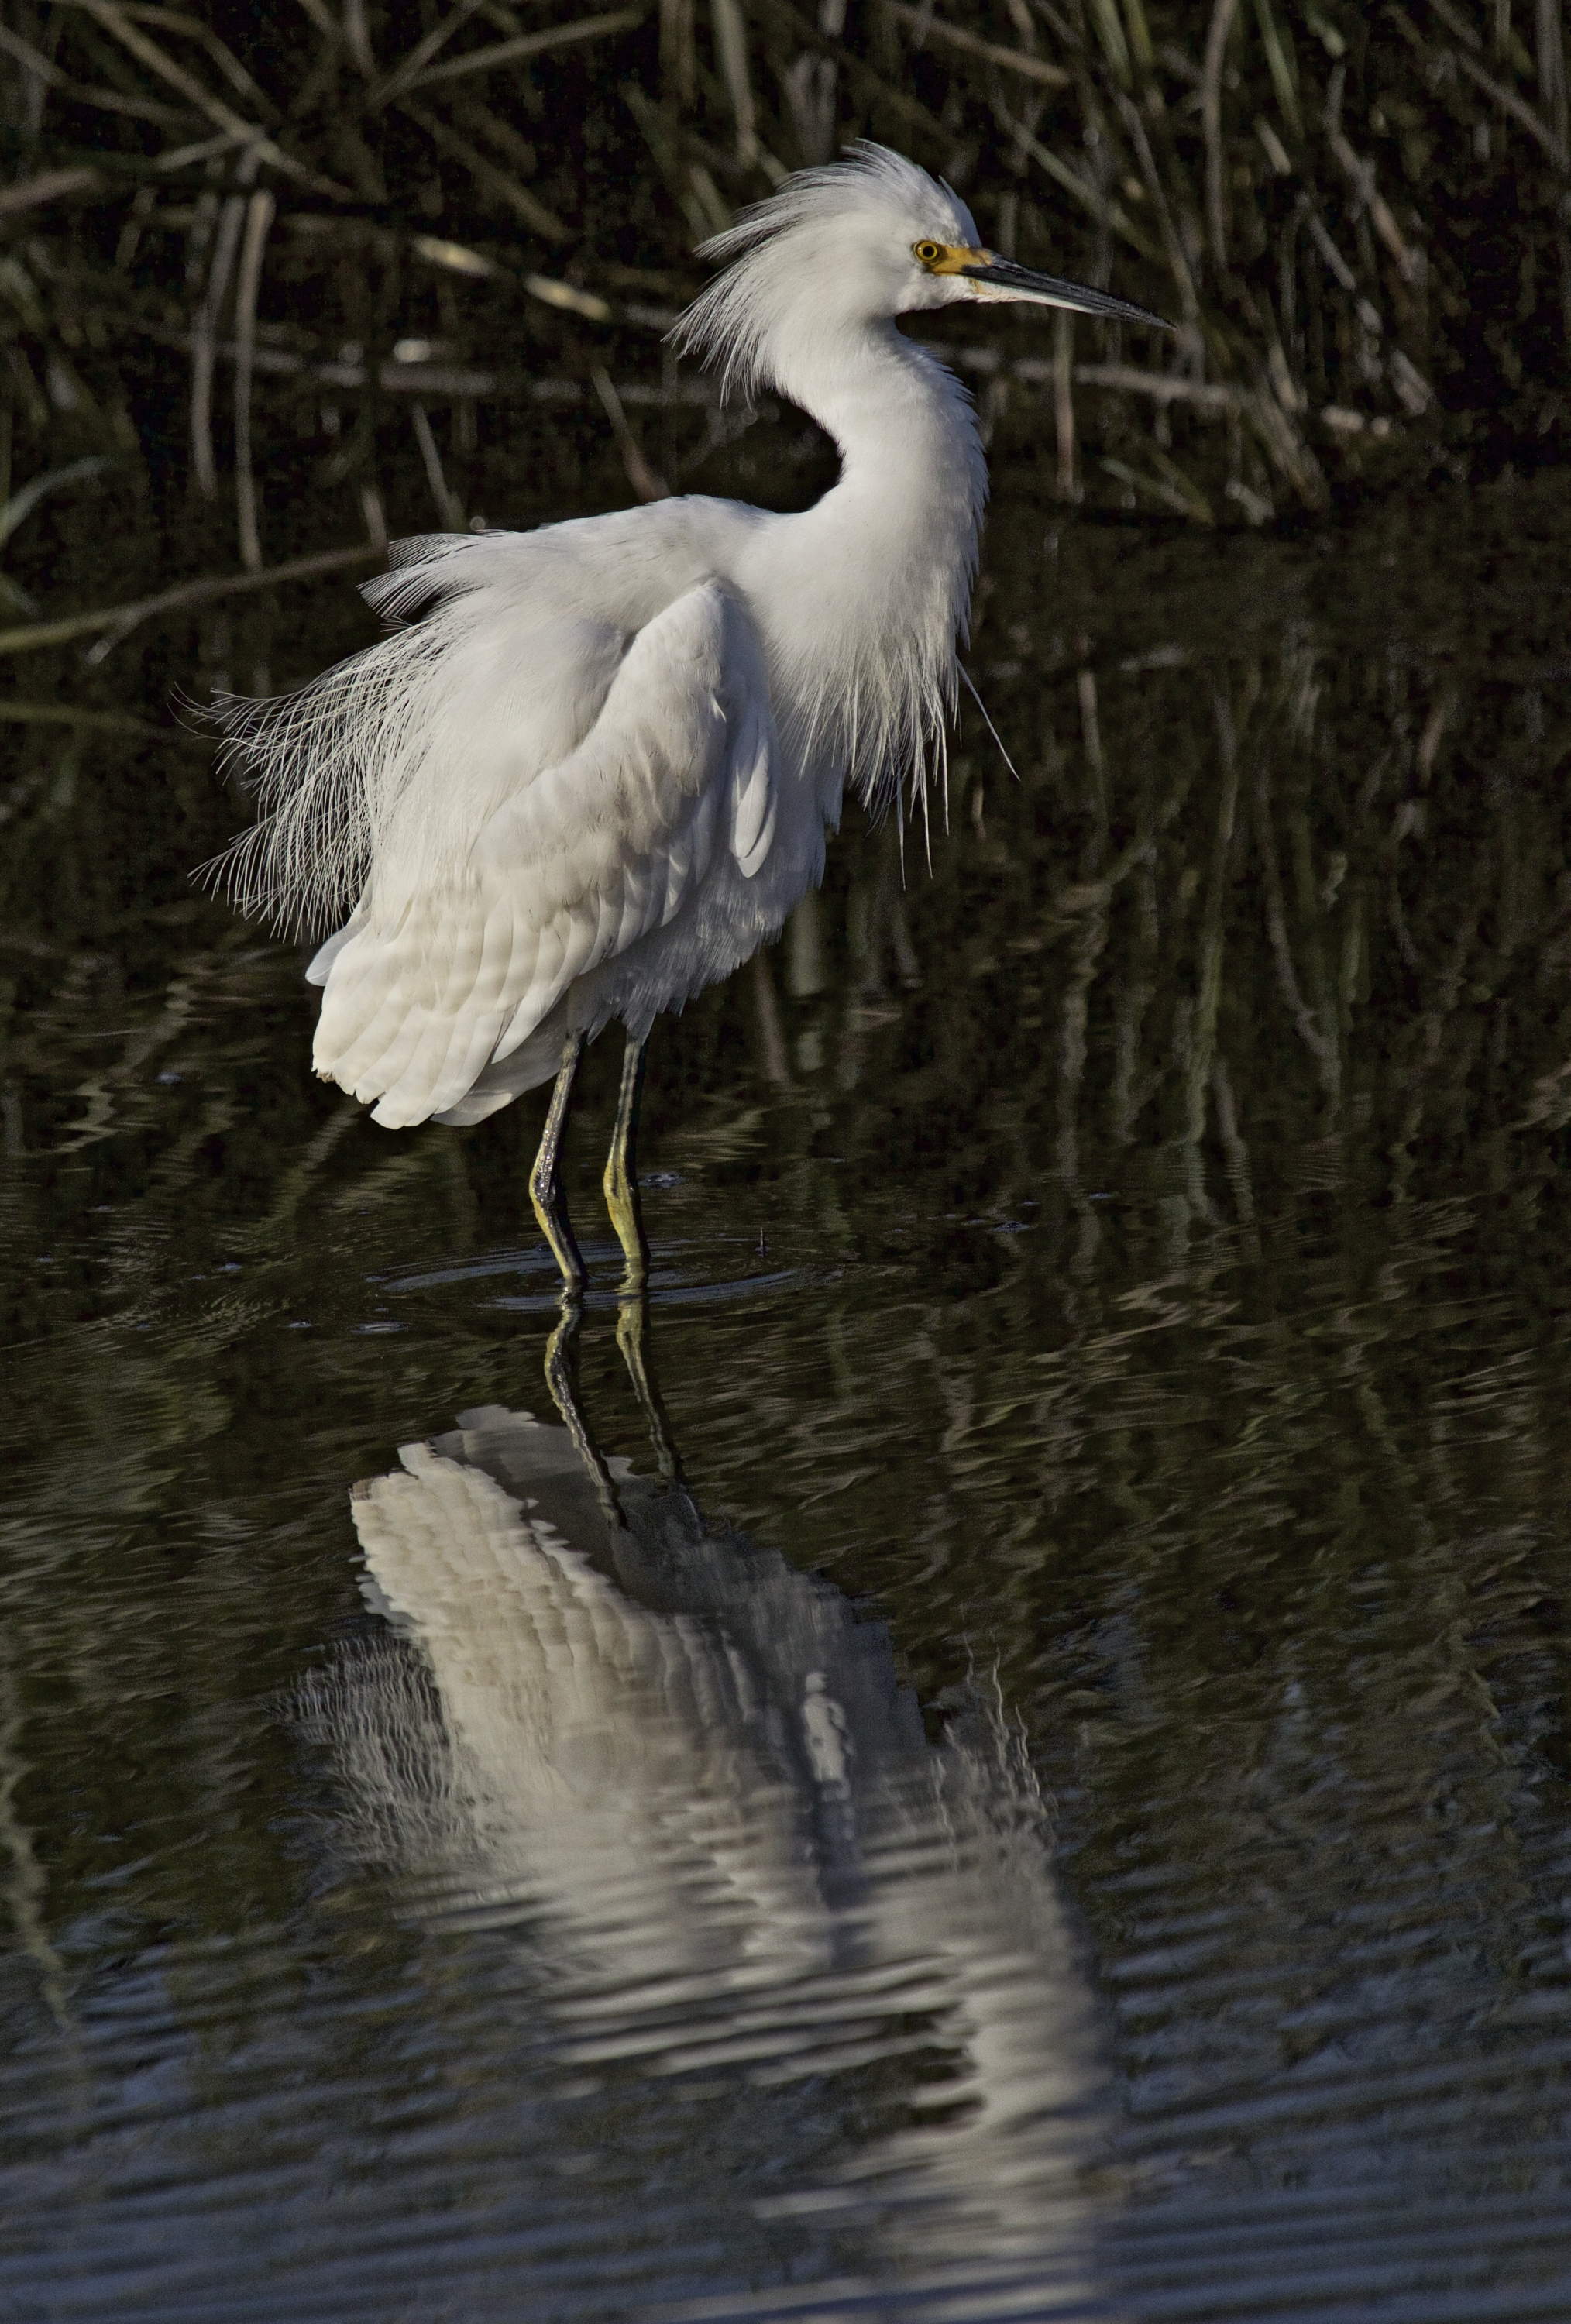 Brrr..that water is cold this morning...whew, it is just a Snowy Egret..glad it isn't a ghost..